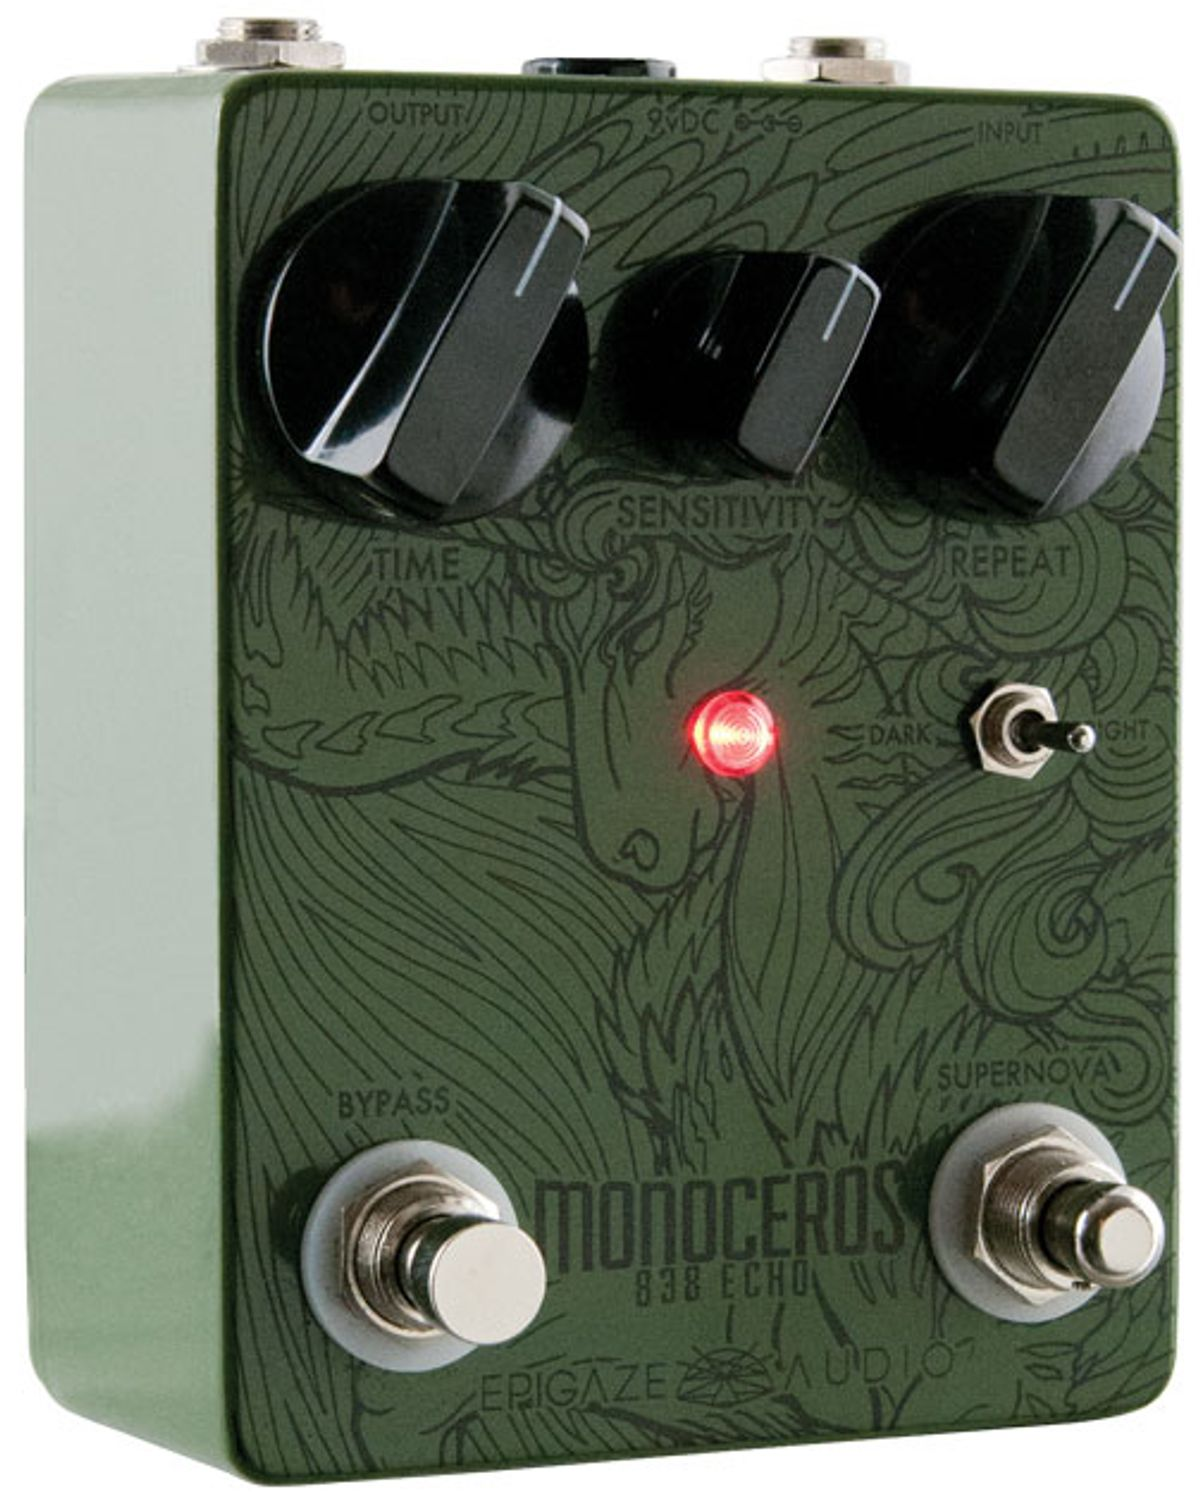 Epigaze Audio Monoceros 838 Echo Review